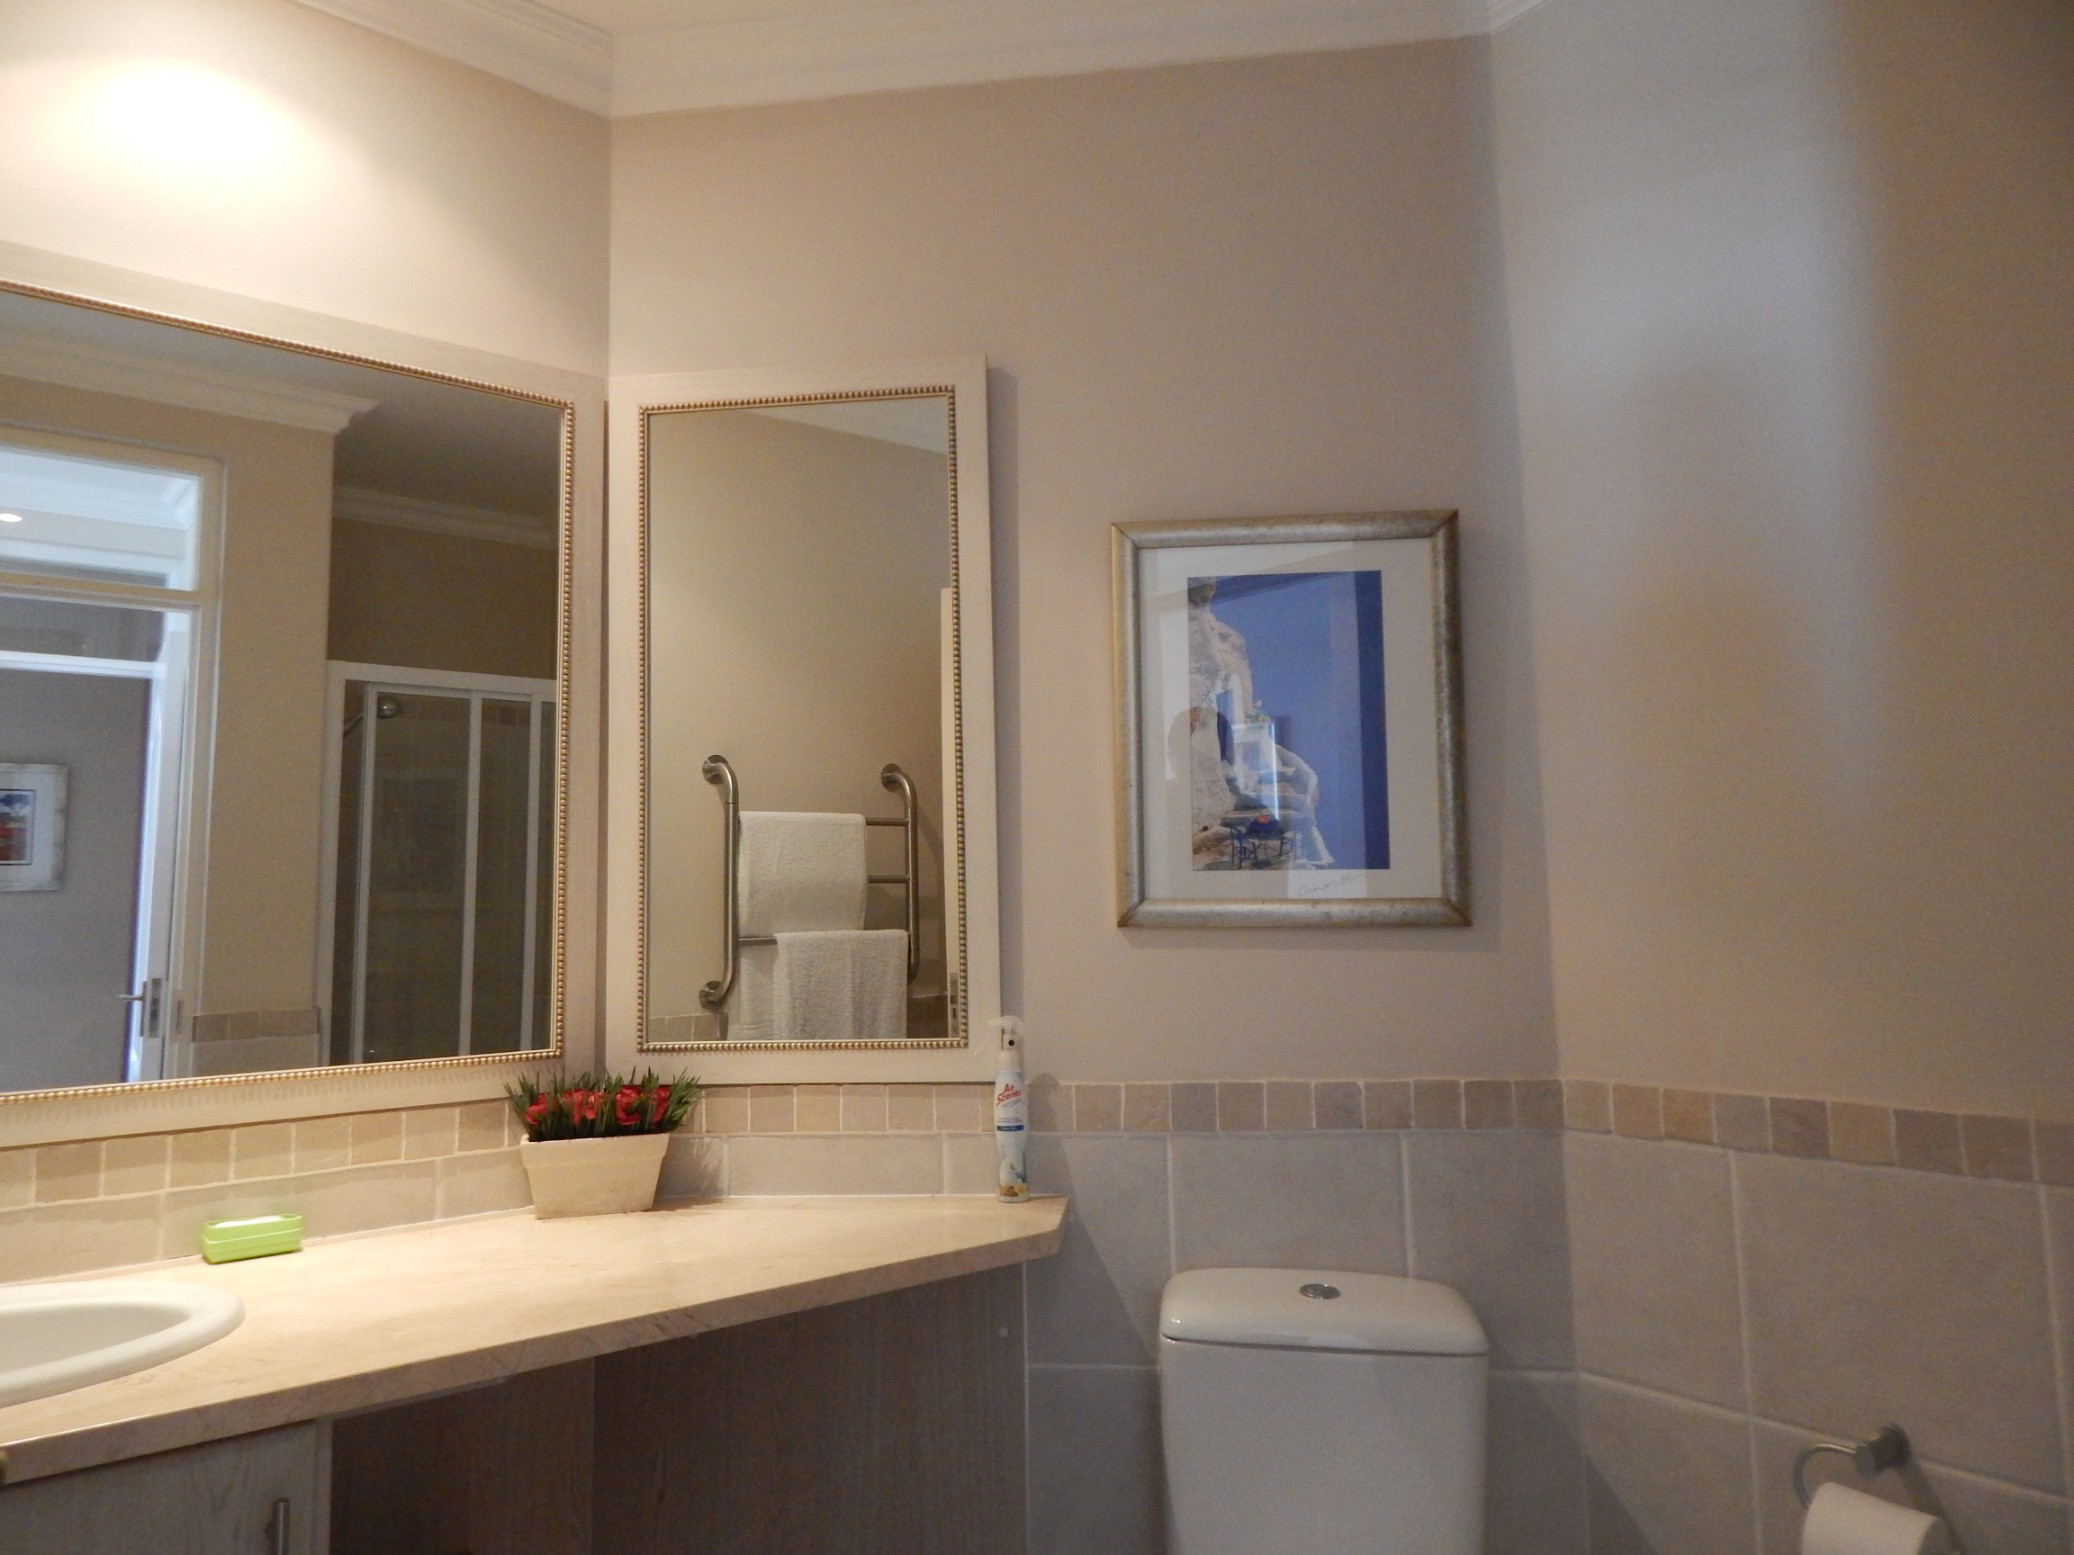 3 Bedroom Apartment for sale in Diaz Beach ENT0069020 : photo#28